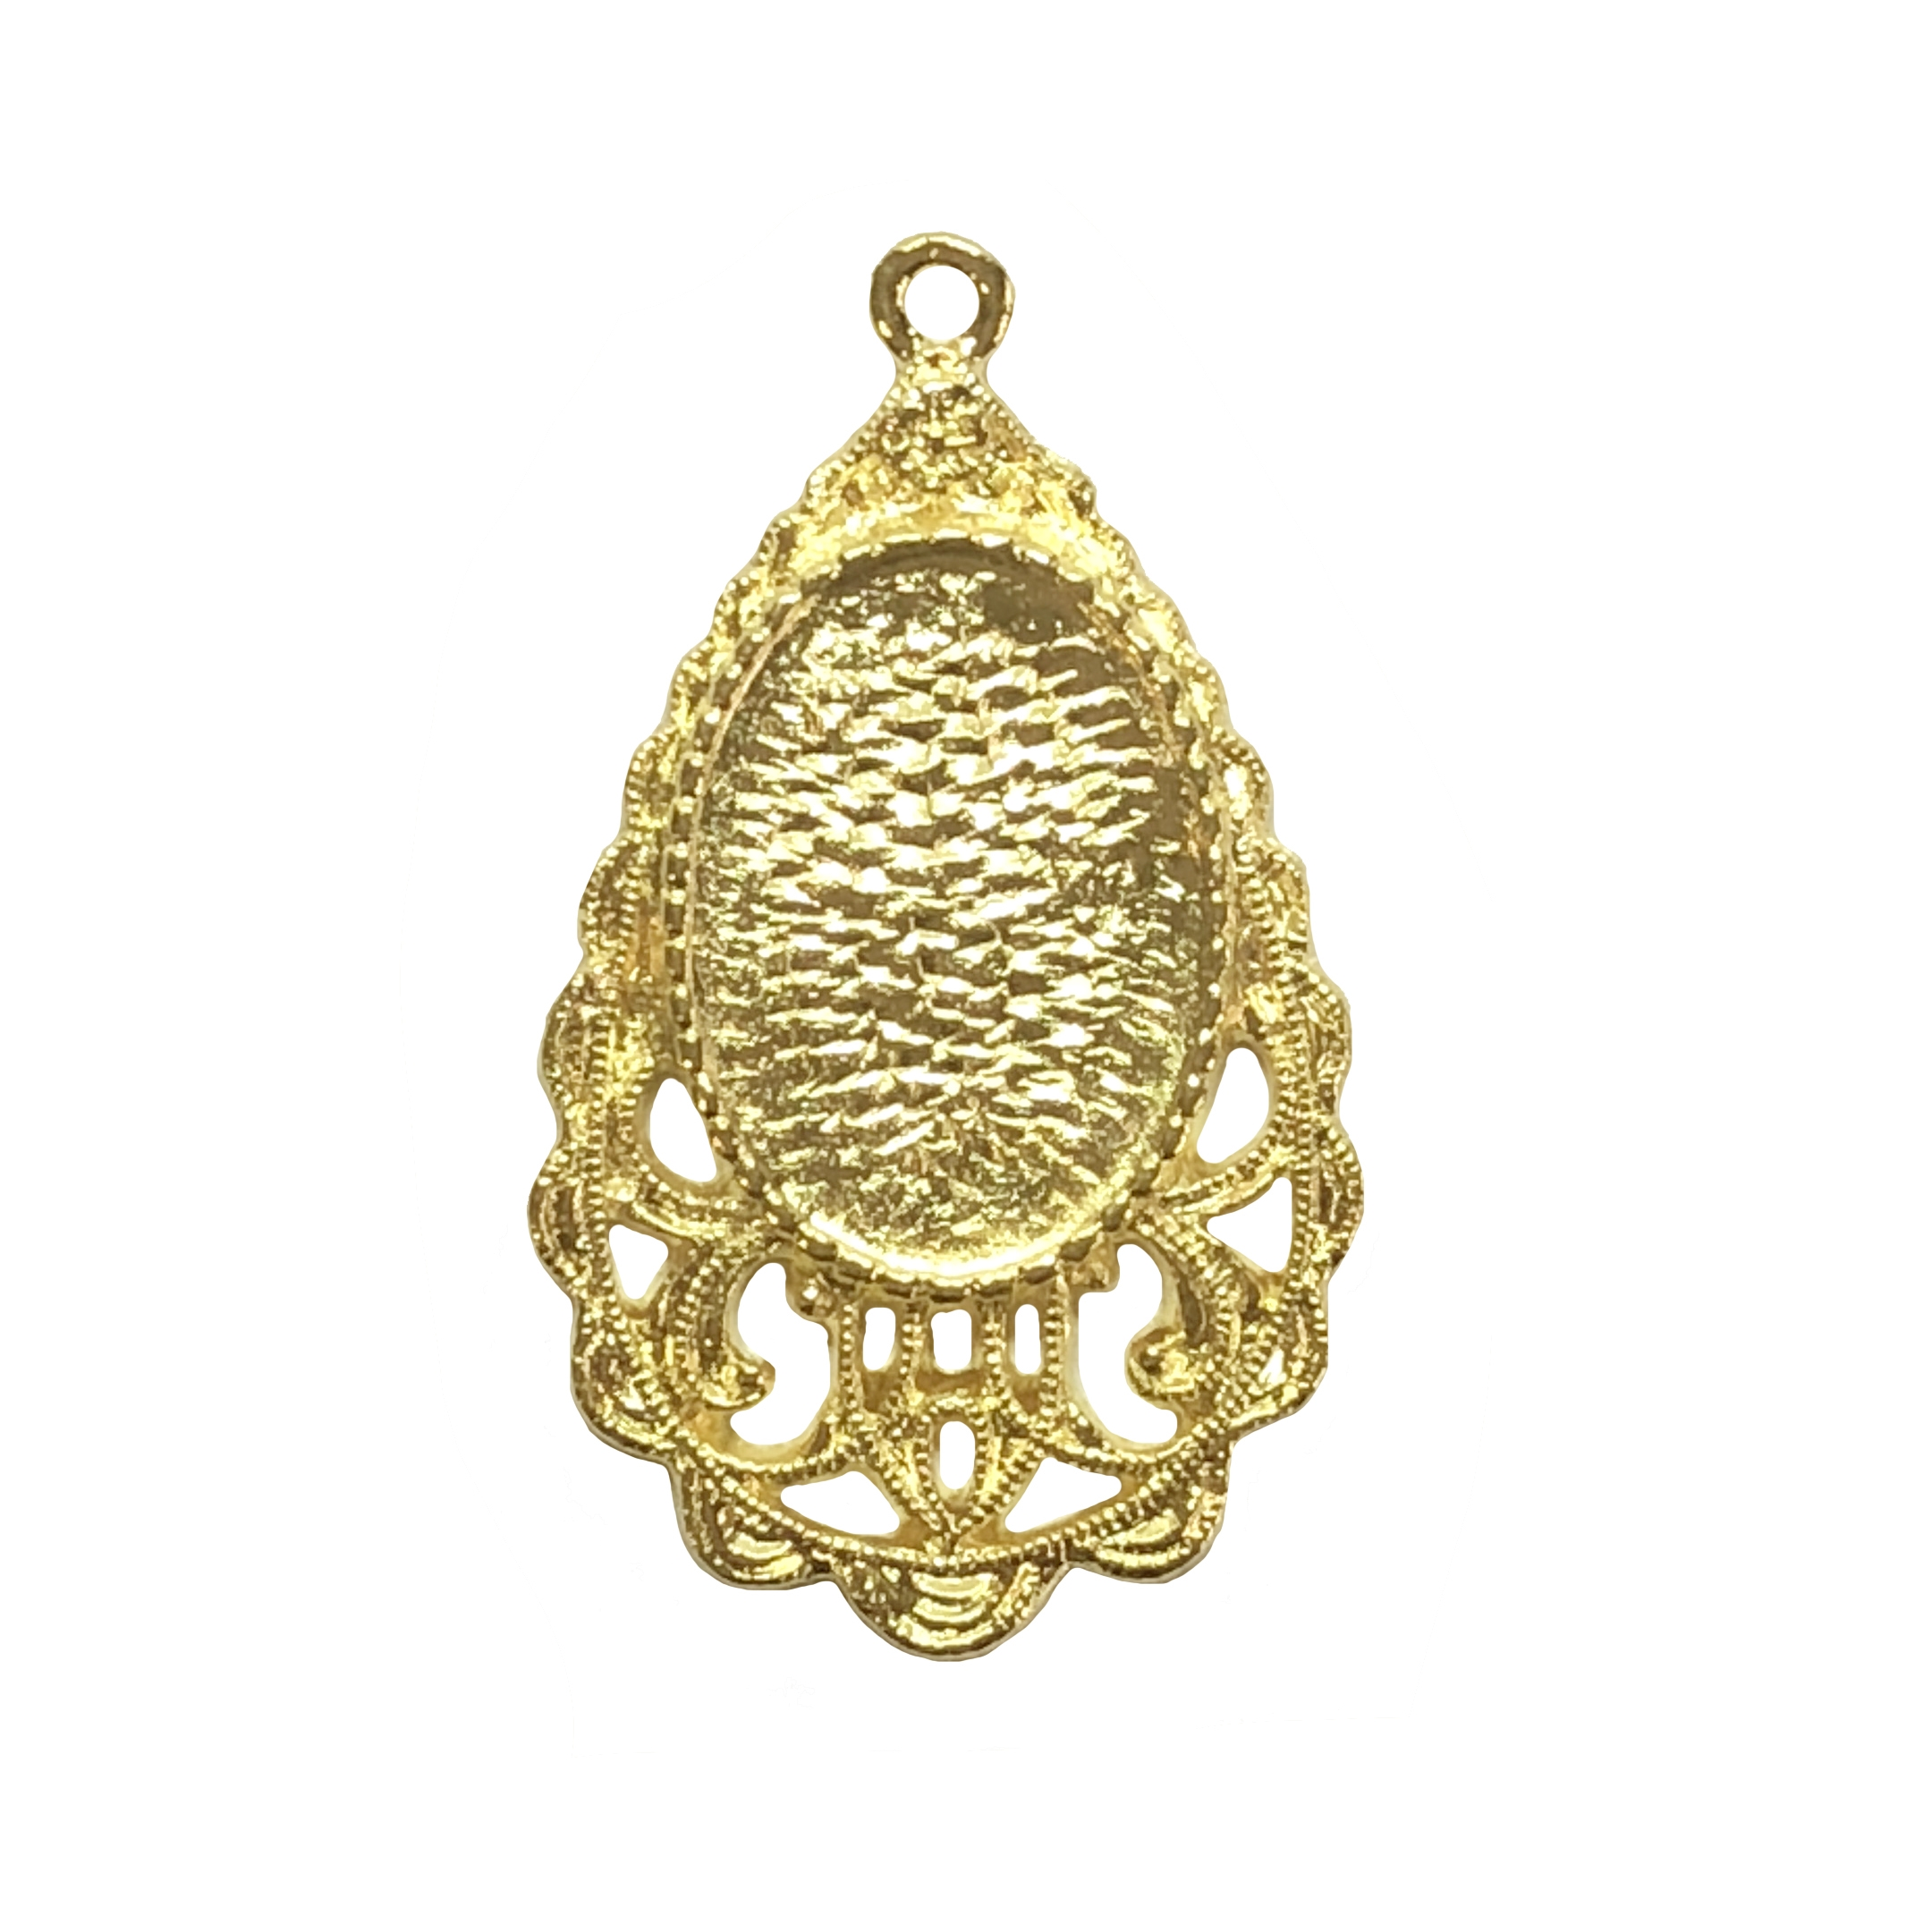 Victorian teardrop mount pendant, 22K gold finish pewter, B'sue by 1928, jewelry pendant, pendant, charm, teardrop, vintage style, gold, lead-free pewter, gold finish, US-made, designer jewelry, vintage supplies, B'sue Boutiques, 34x22mm, 08538